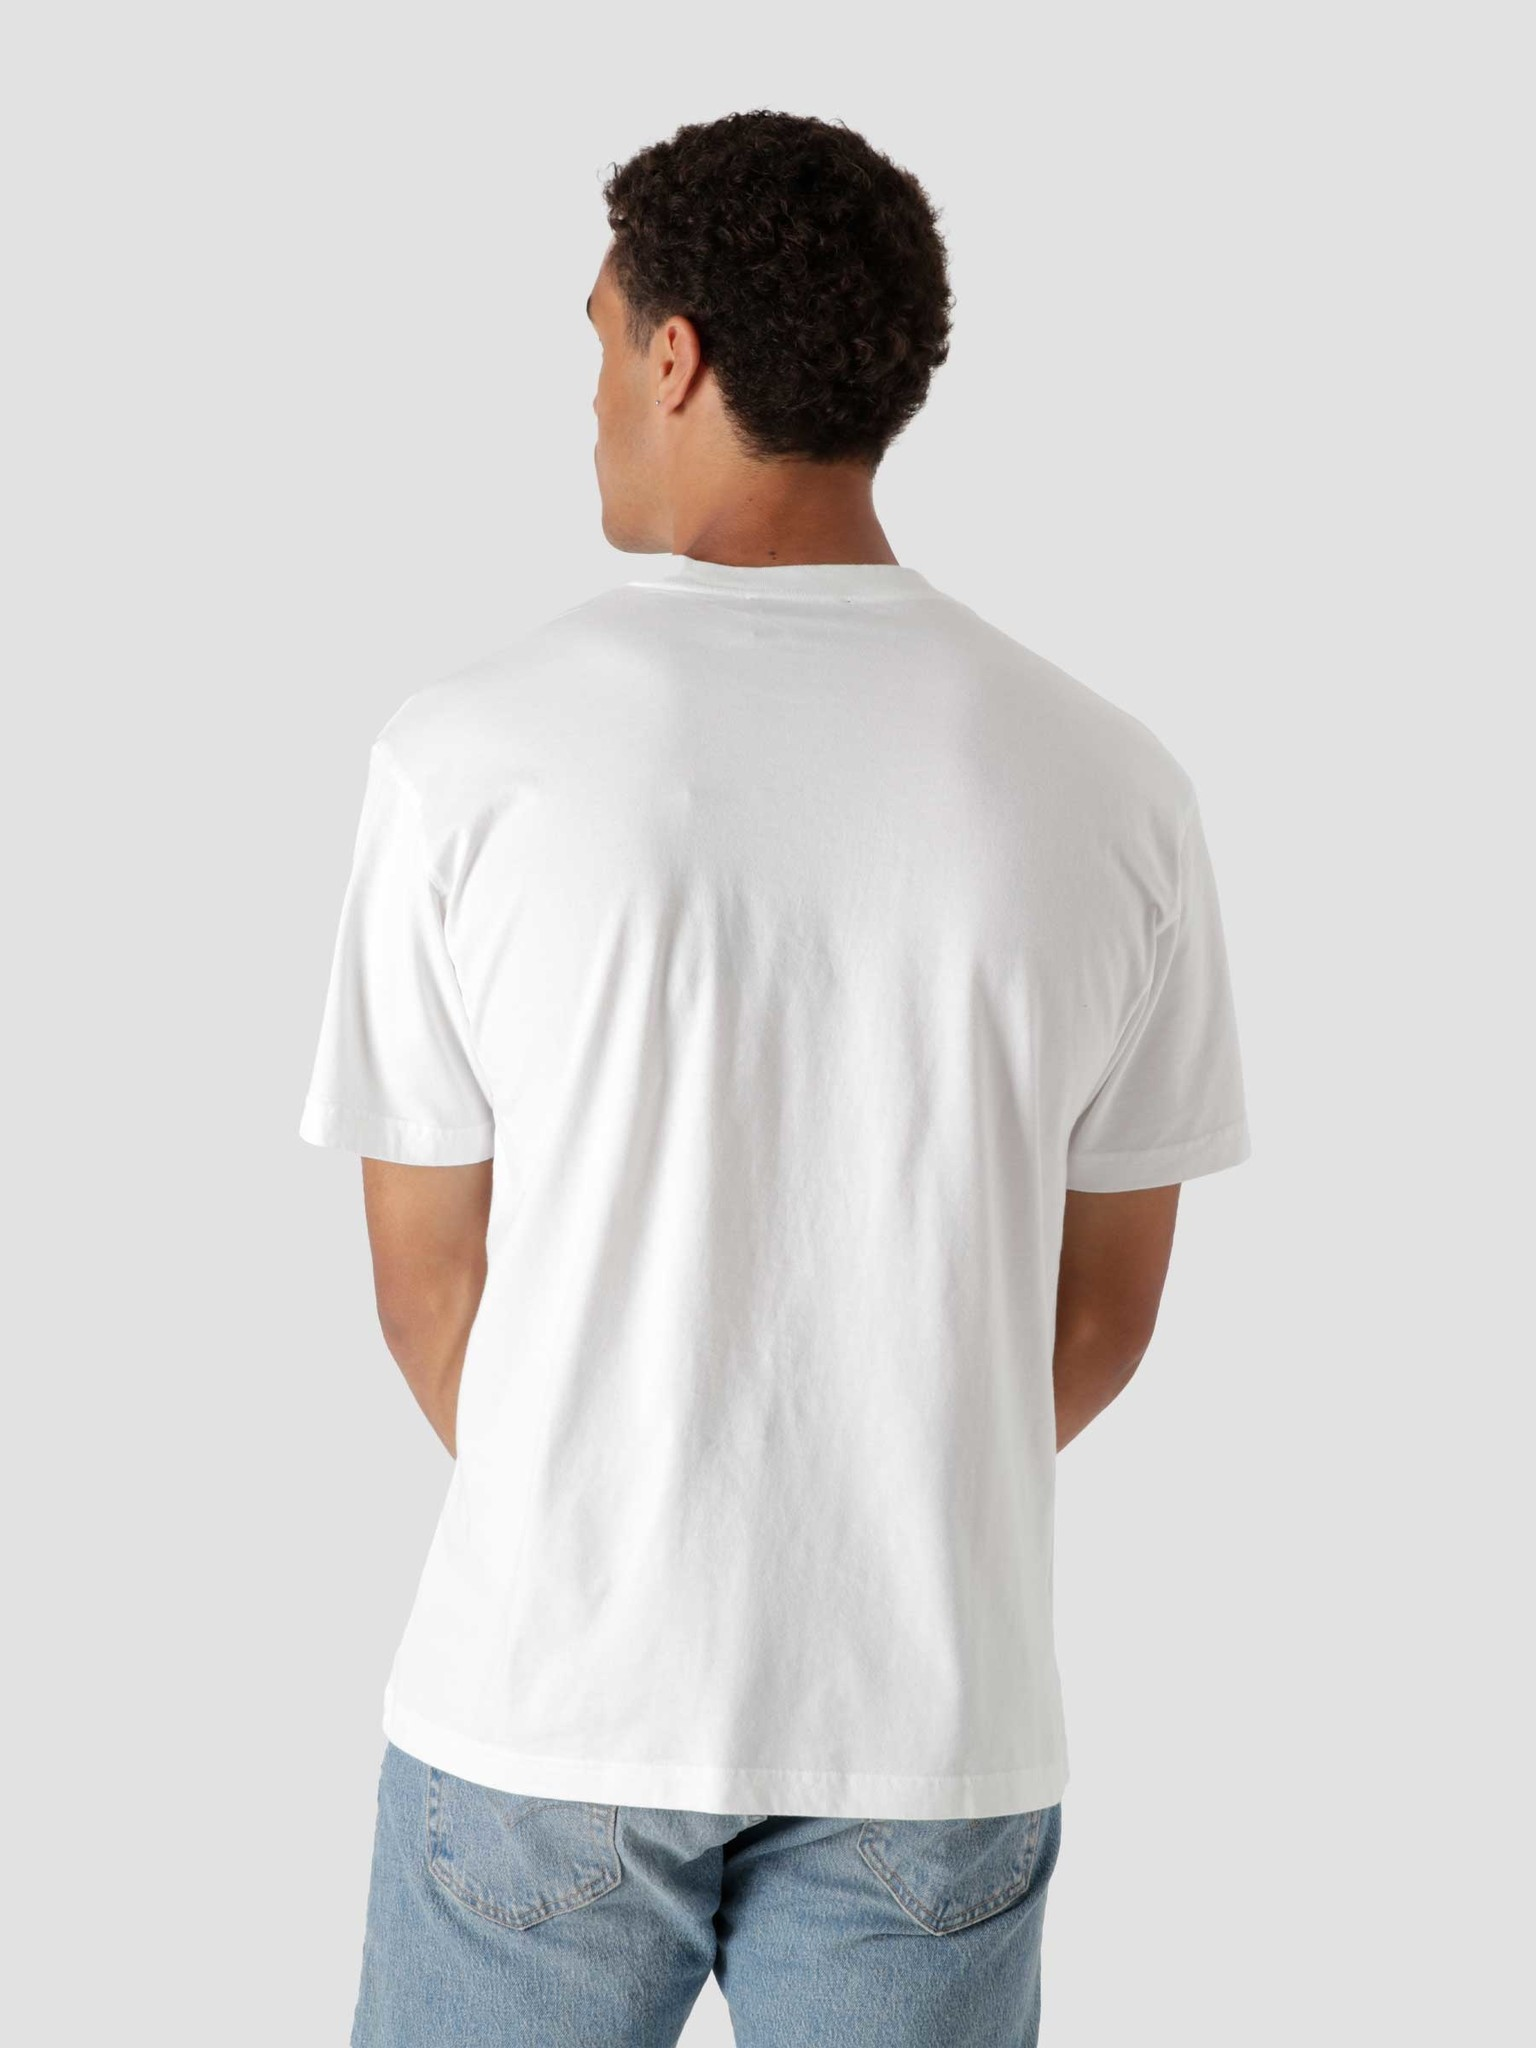 Olaf Hussein Olaf Hussein OLAF Watercolor T-Shirt White